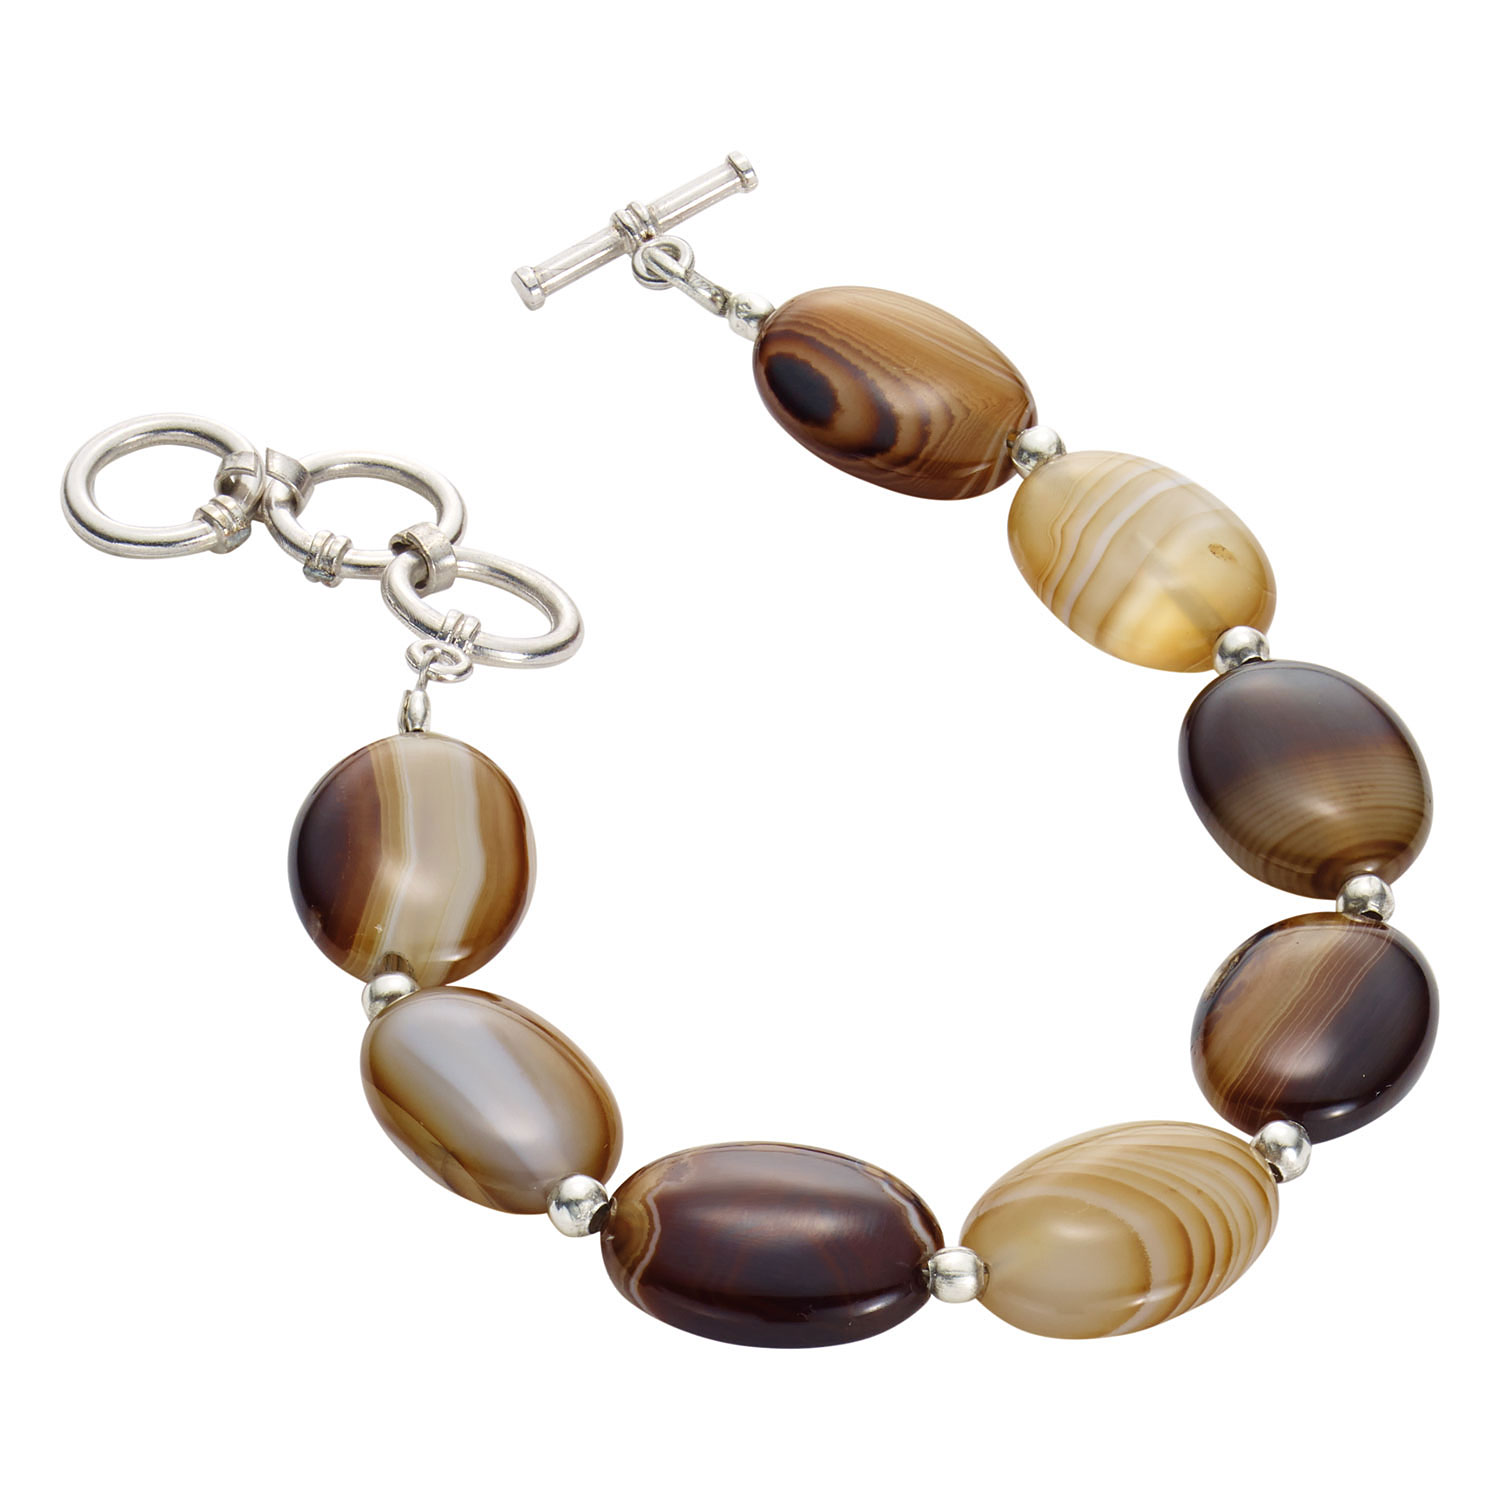 Women's Botswana Agate Bracelet 8 Polished Natural Brown Banded Stones by SHAJUKY EXPORTS